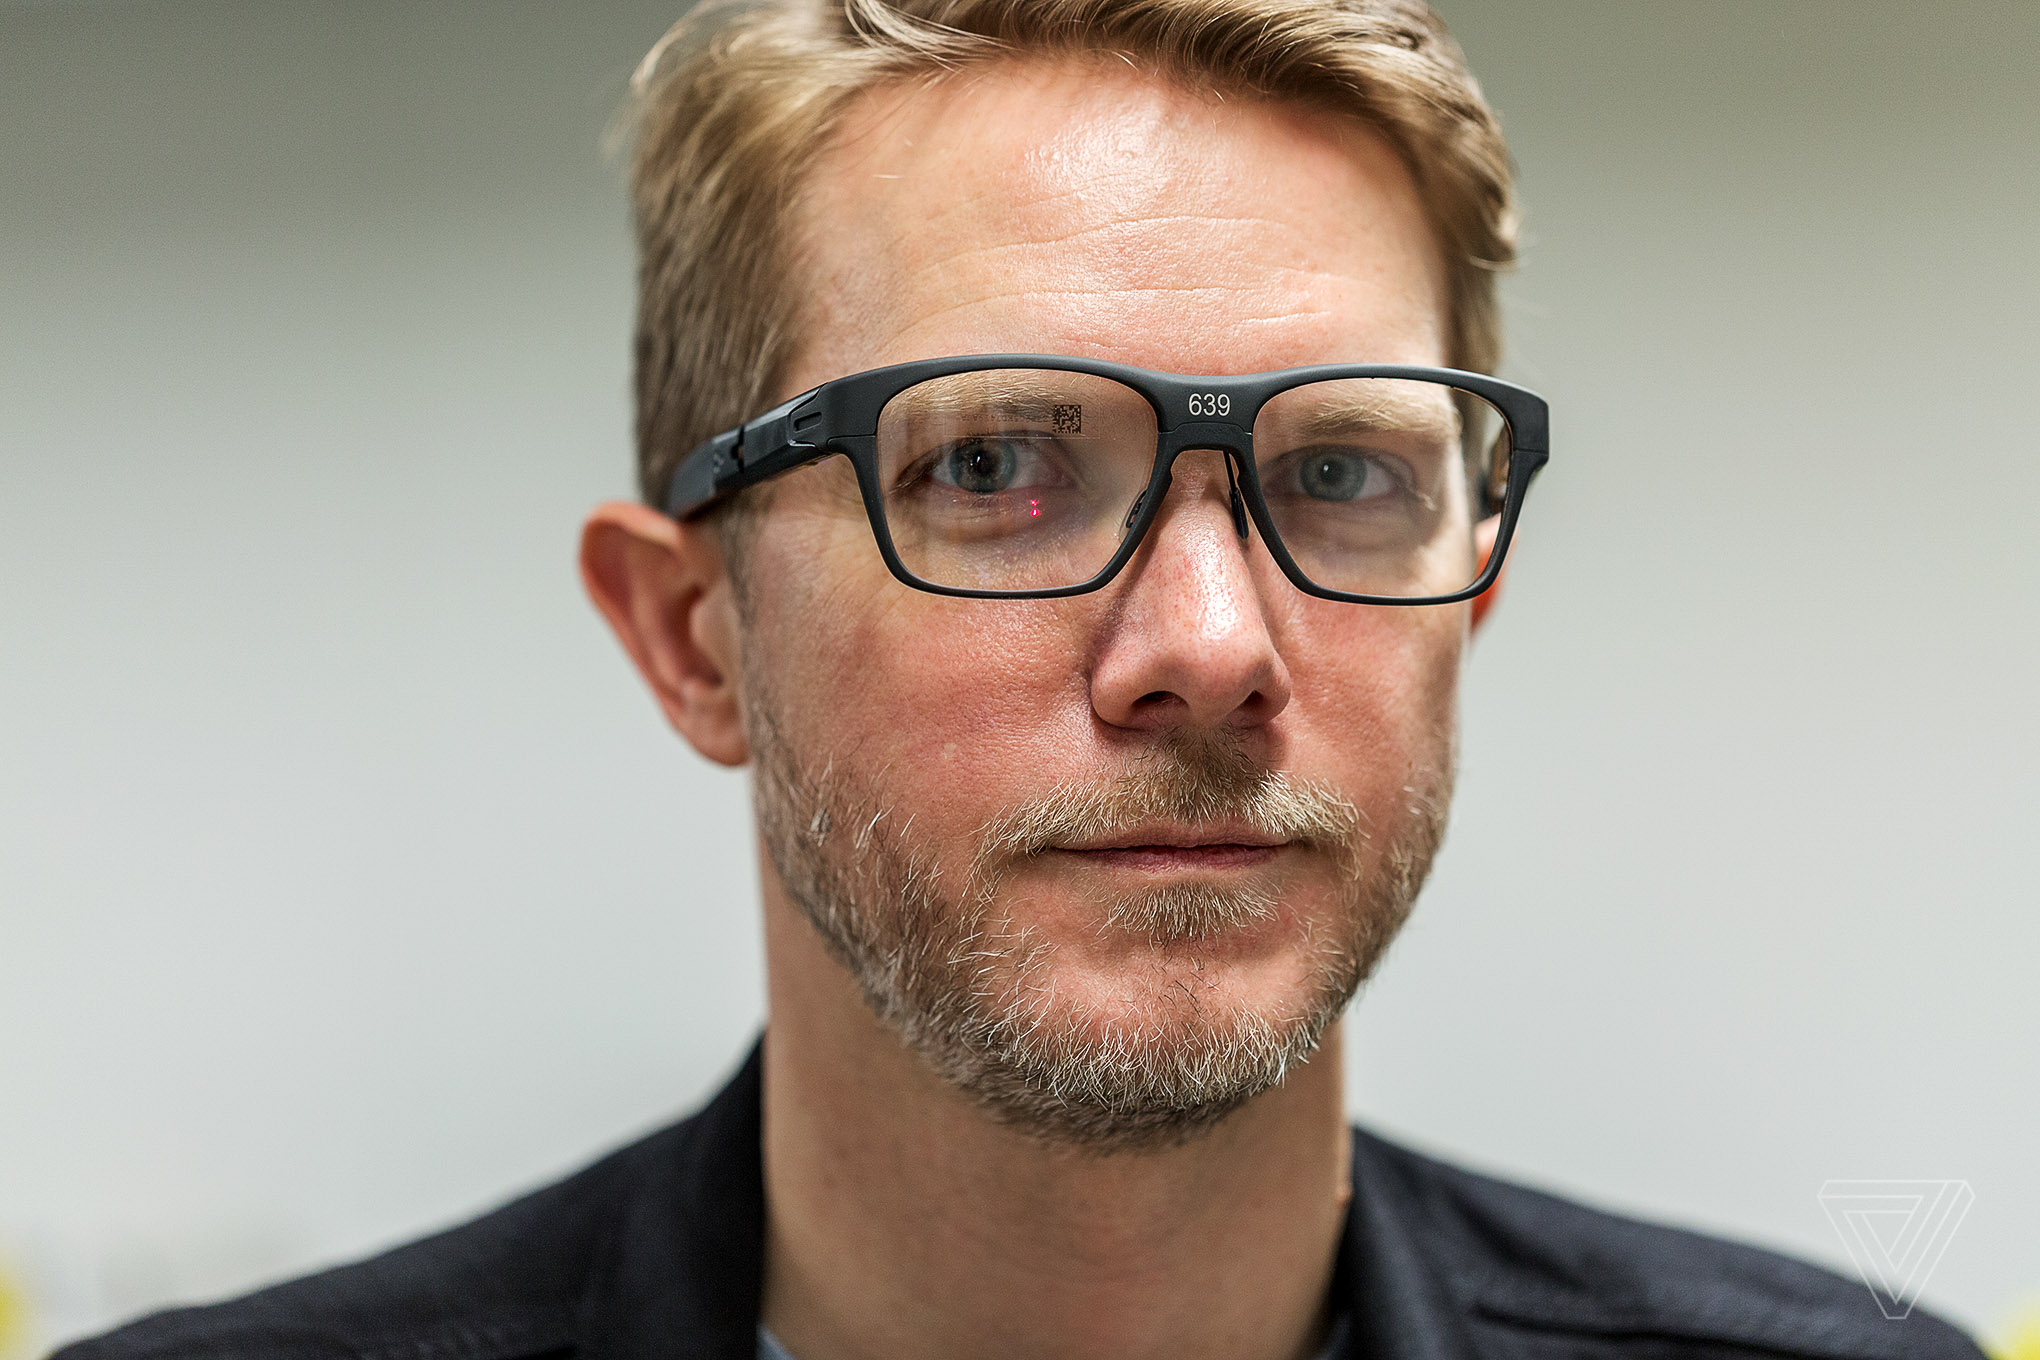 aa2d75de8b6df Exclusive  Intel s new Vaunt smart glasses actually look good - The Verge